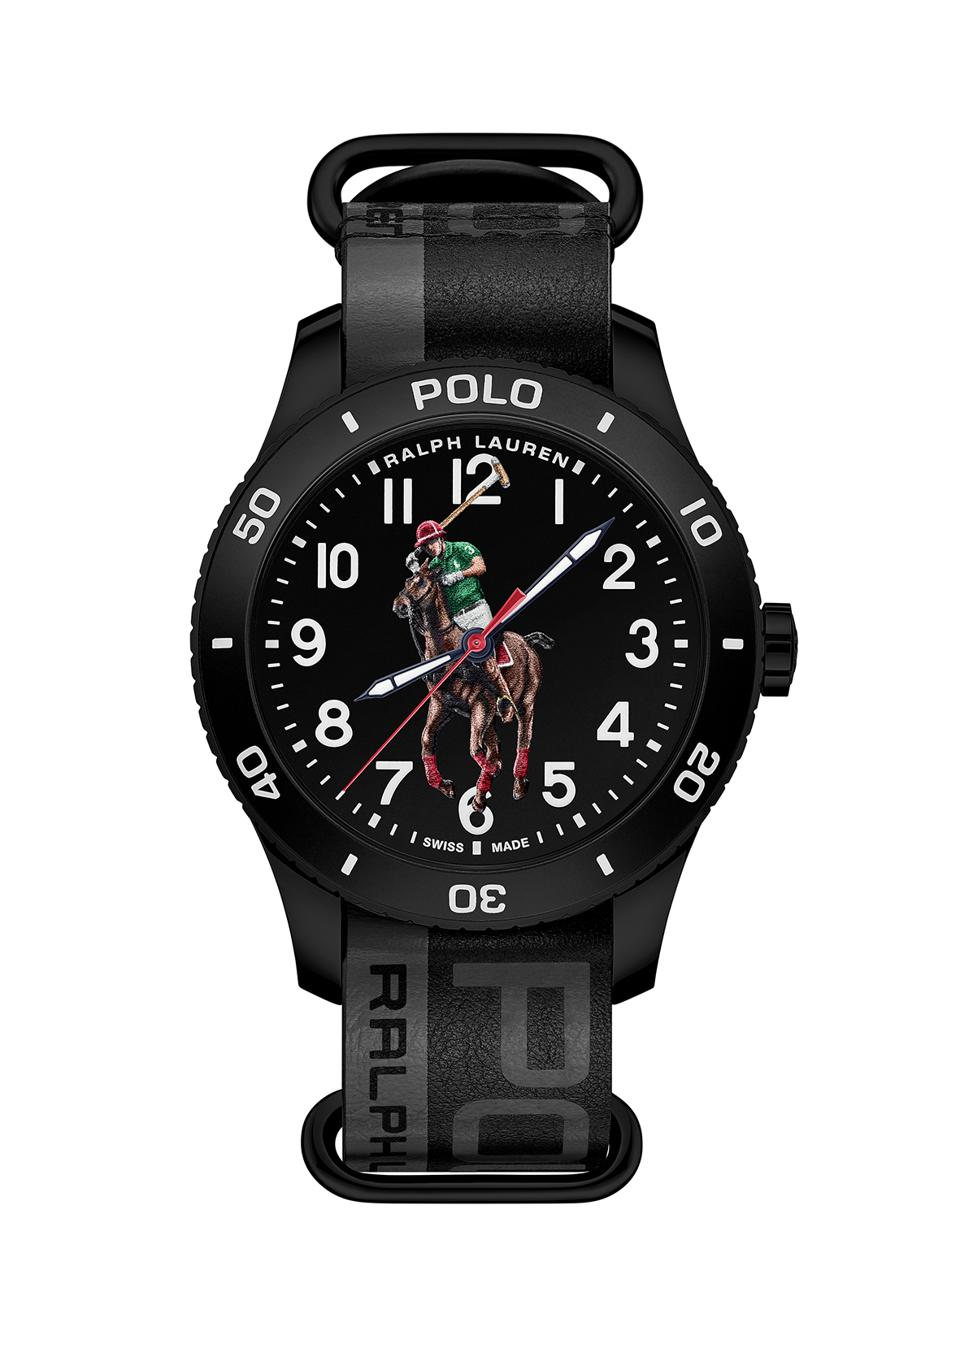 Ralph Lauren Polo Watch in a black PVD-coated stainless steel case